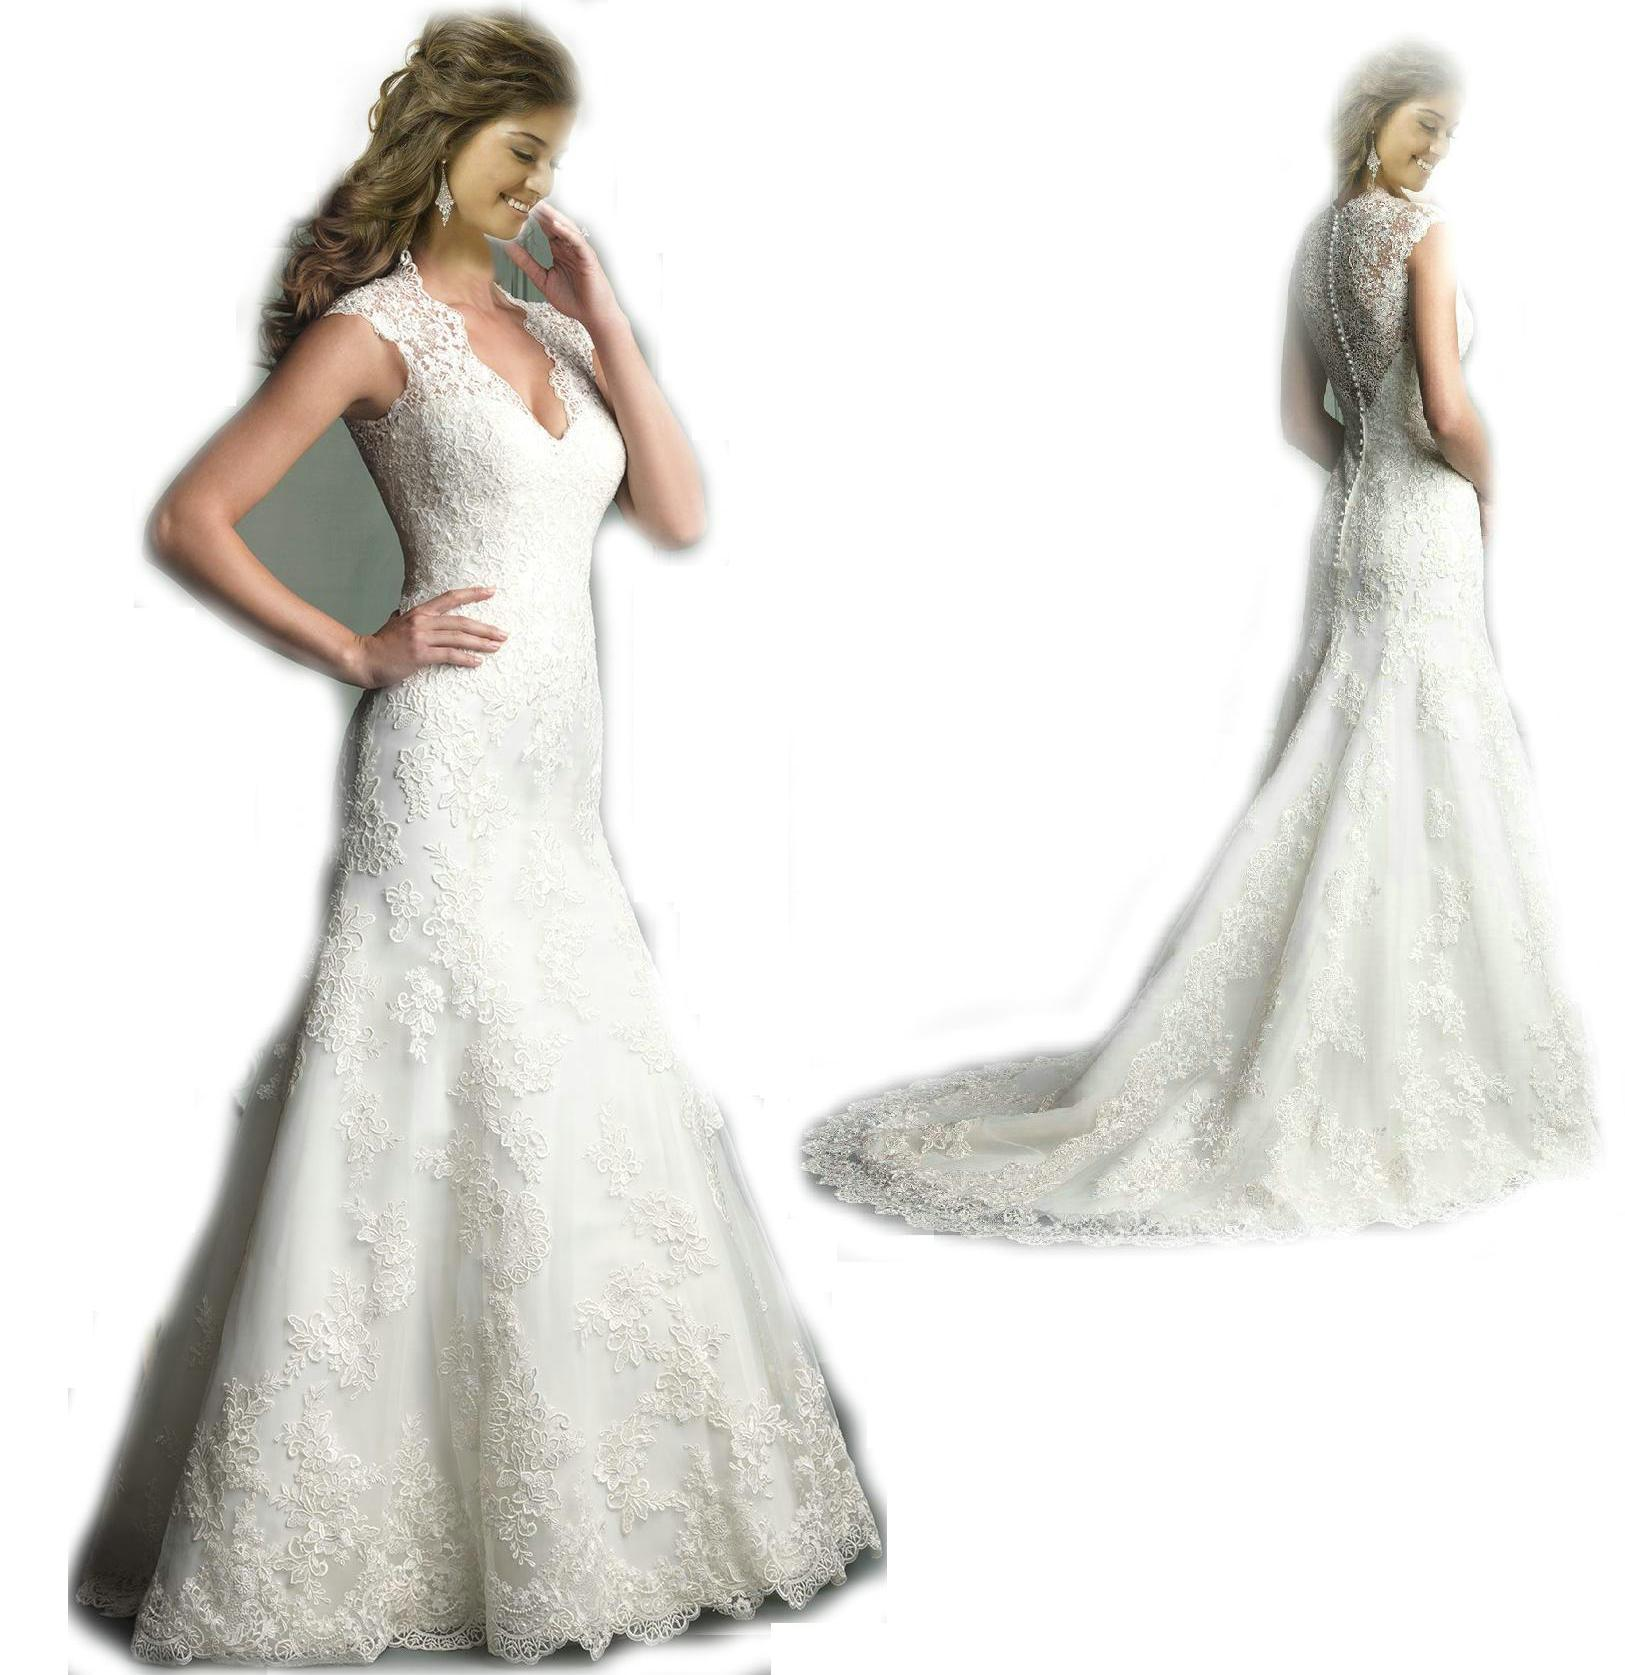 Cheap Sheer Straps Lace Mermaid Wedding Dresses 2014 Plunging V Neck Applique Satin Illusion